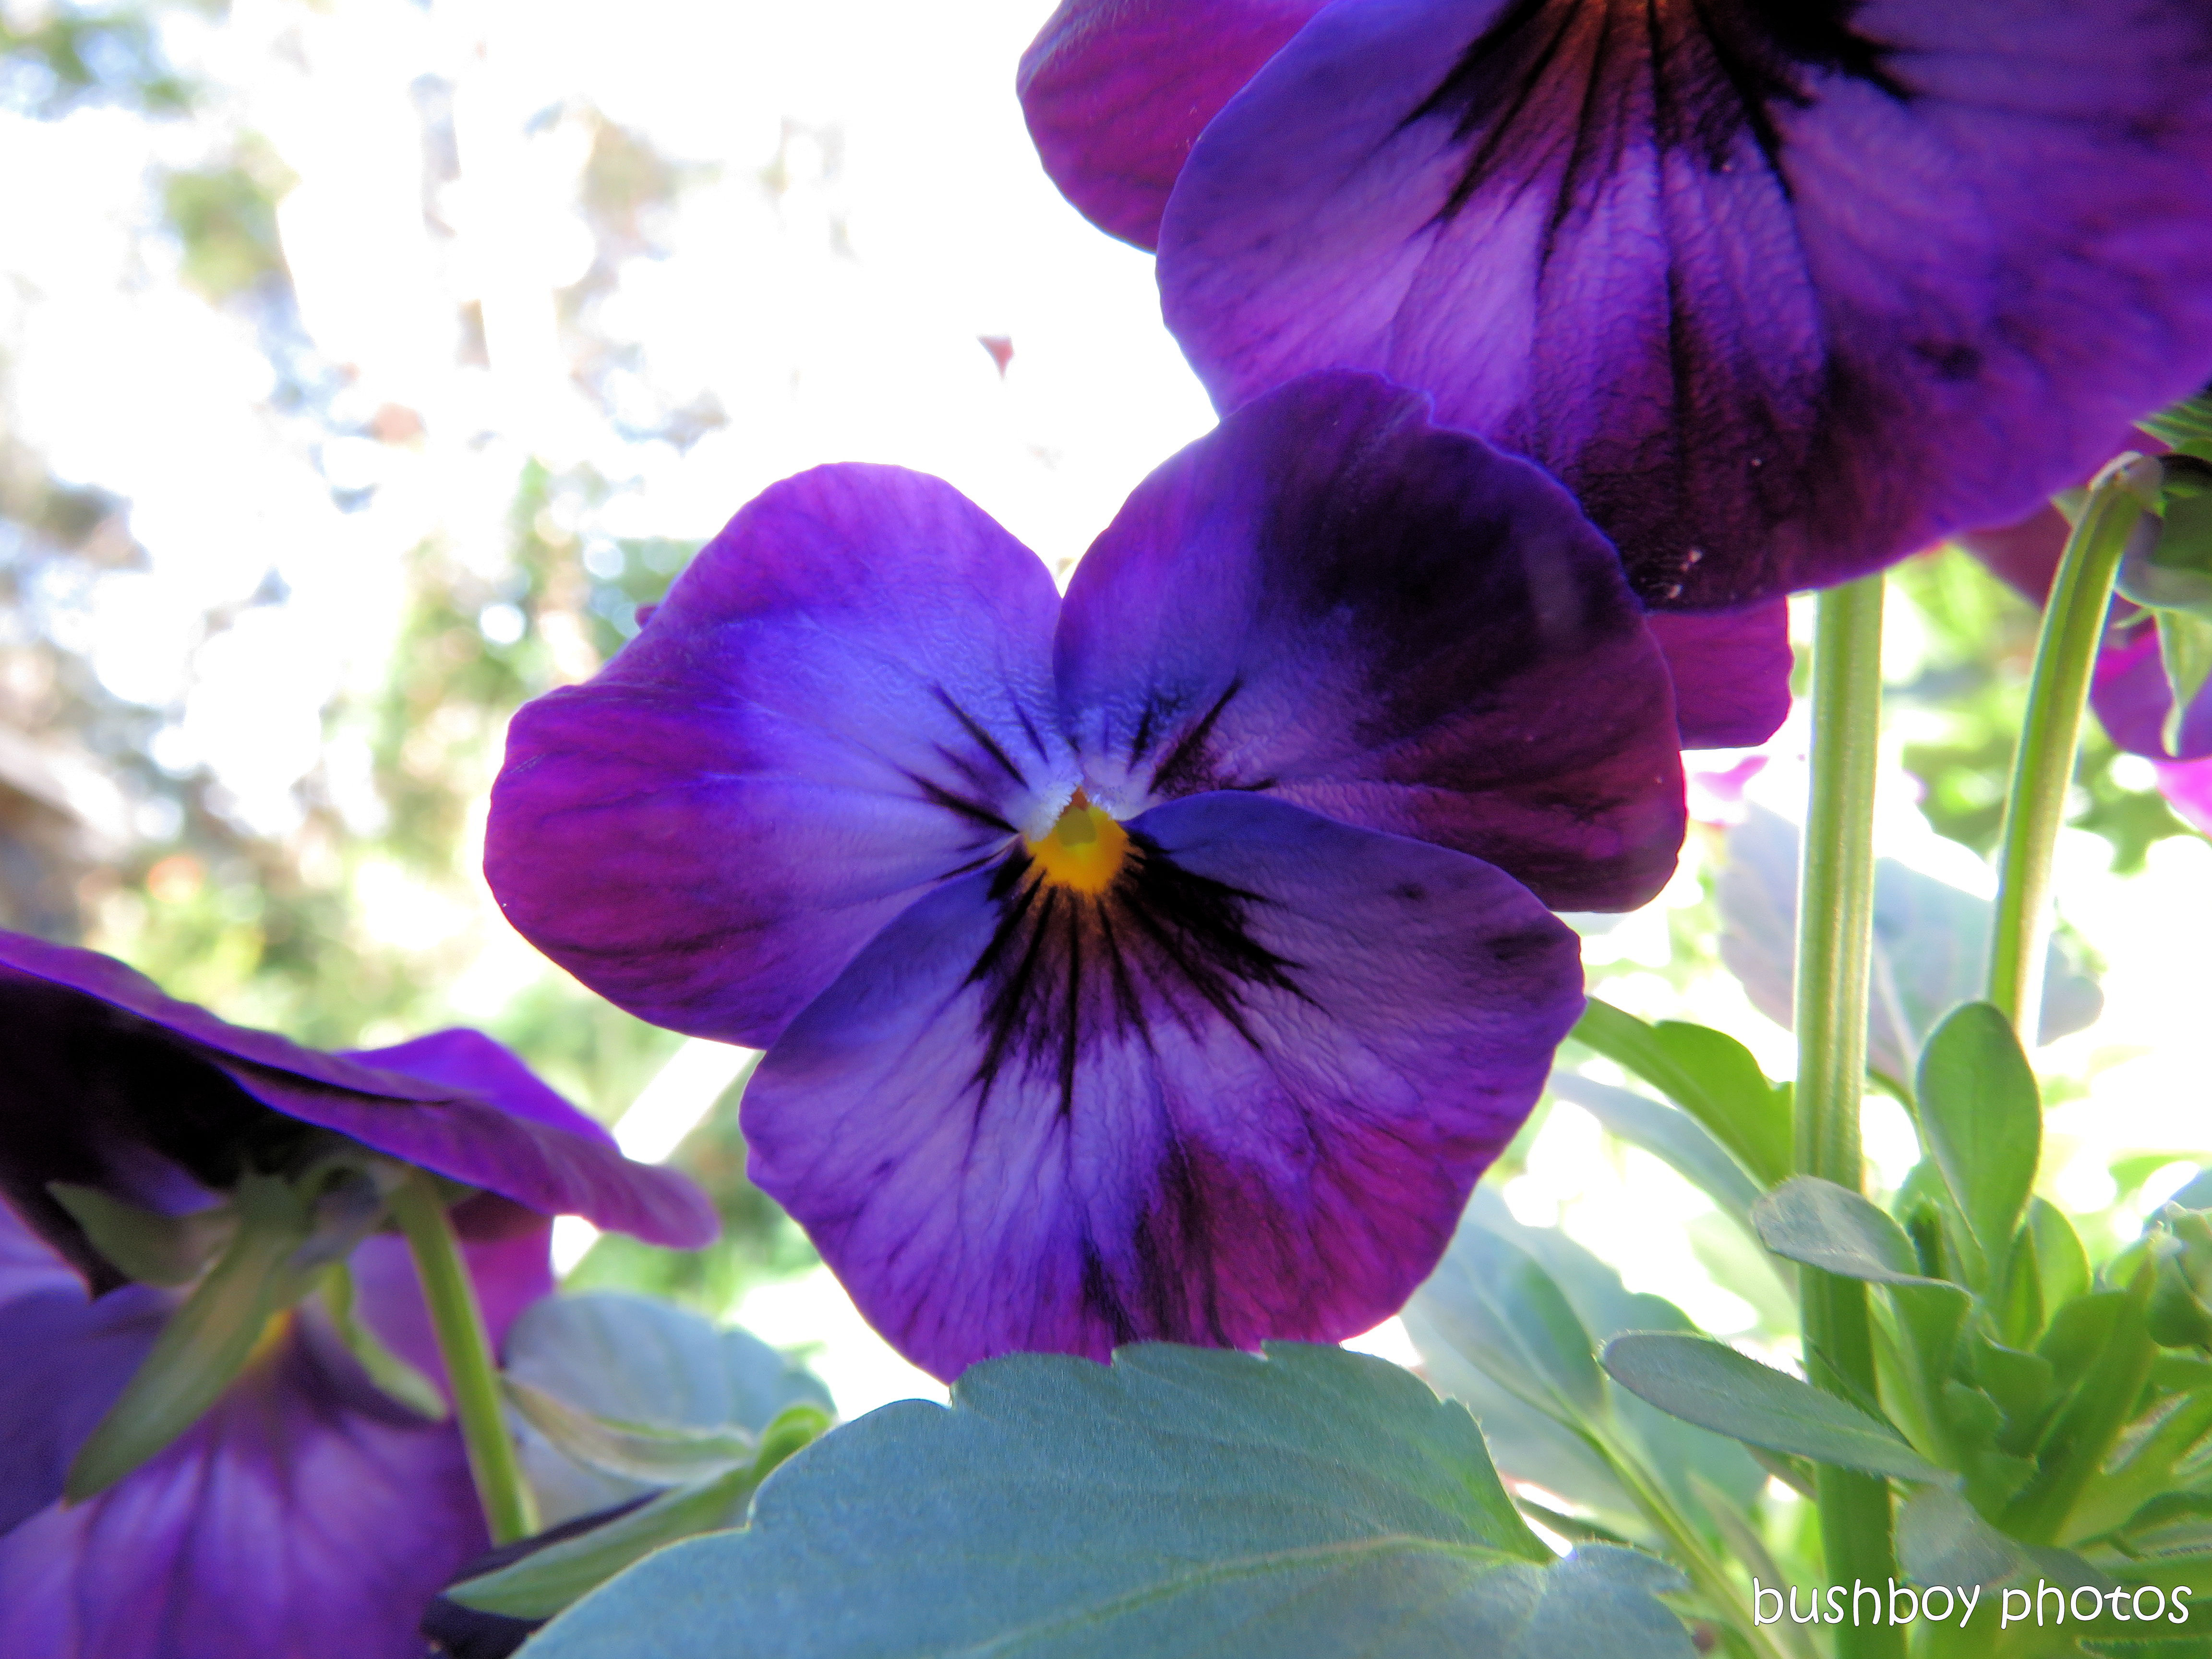 pansy01_named_binna burra_may 2017